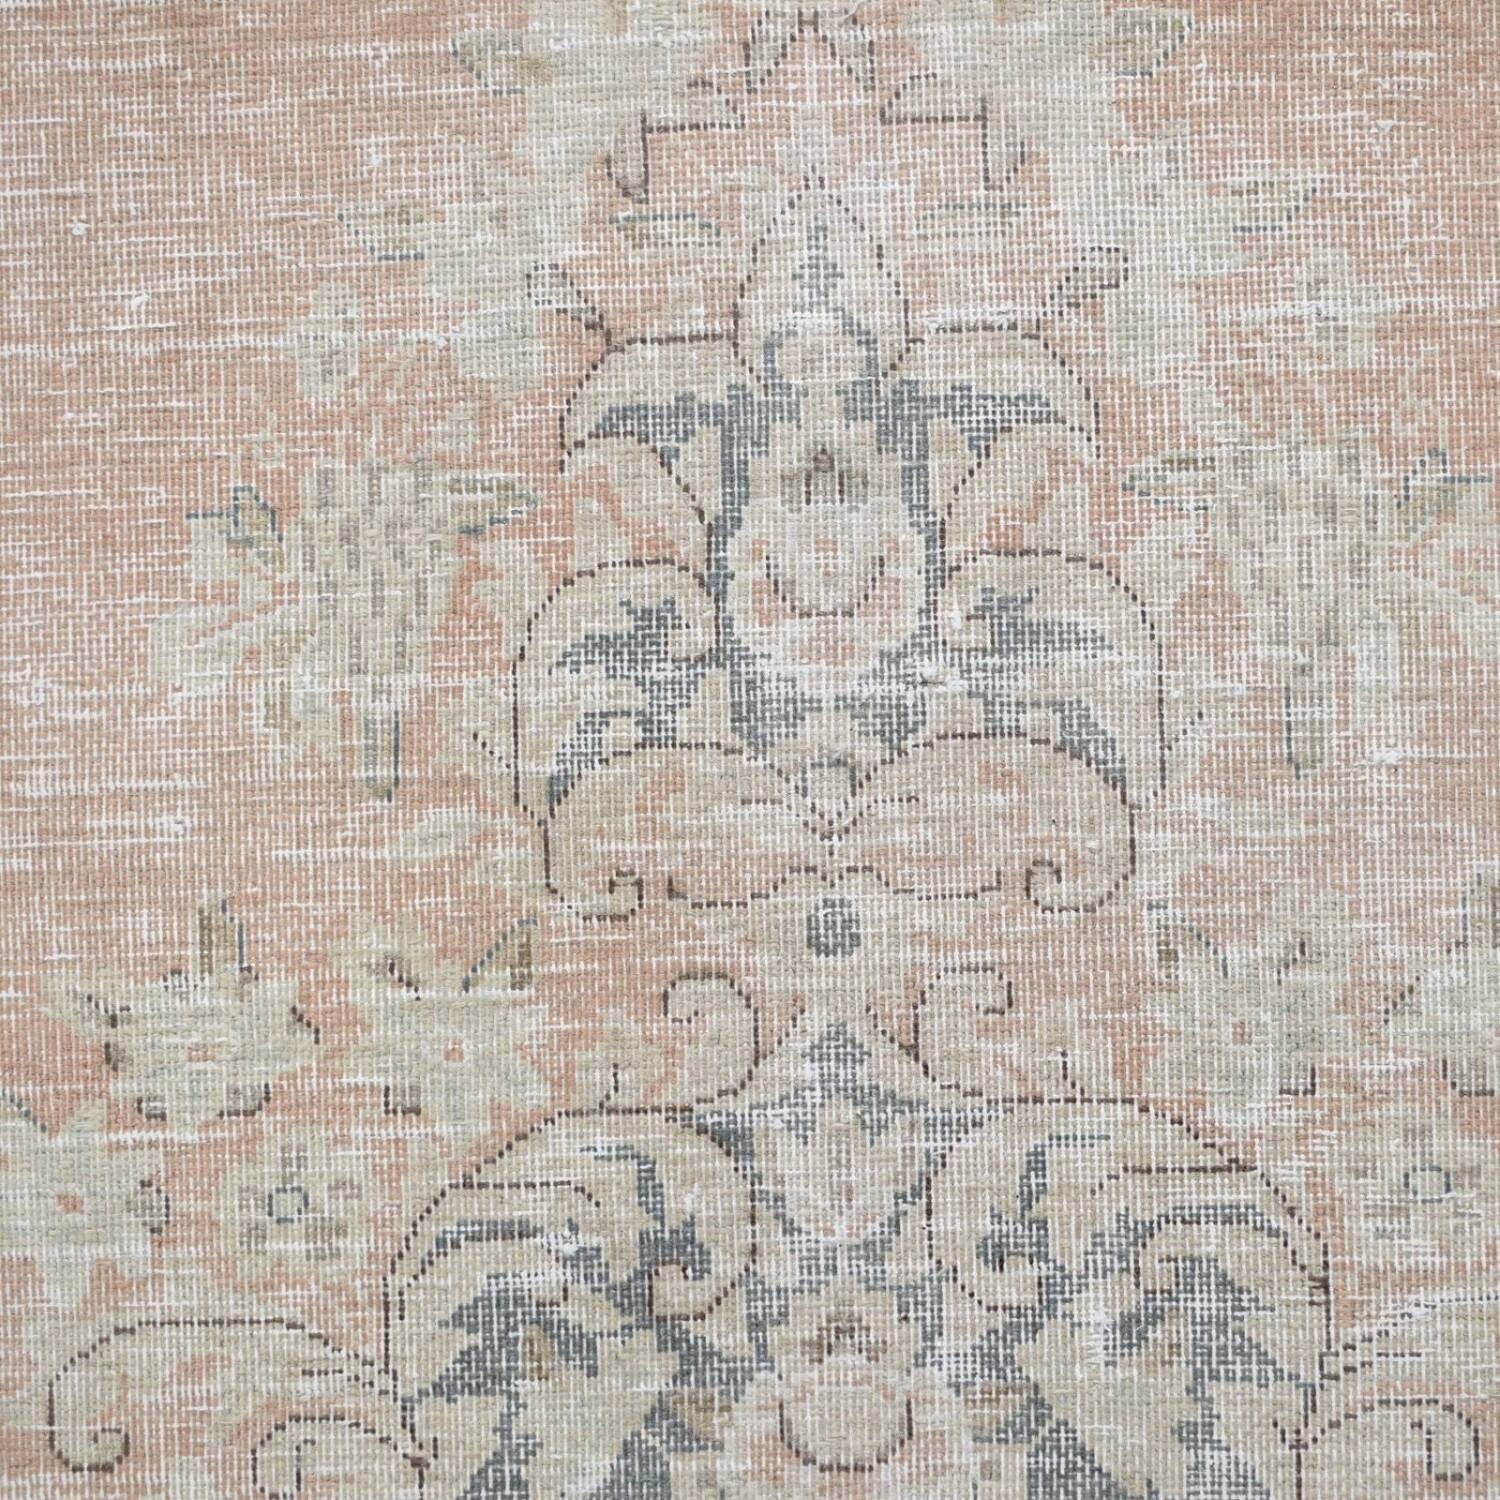 Antique Distressed Floral Kerman Persian Muted Area Rug 10x13 image 4